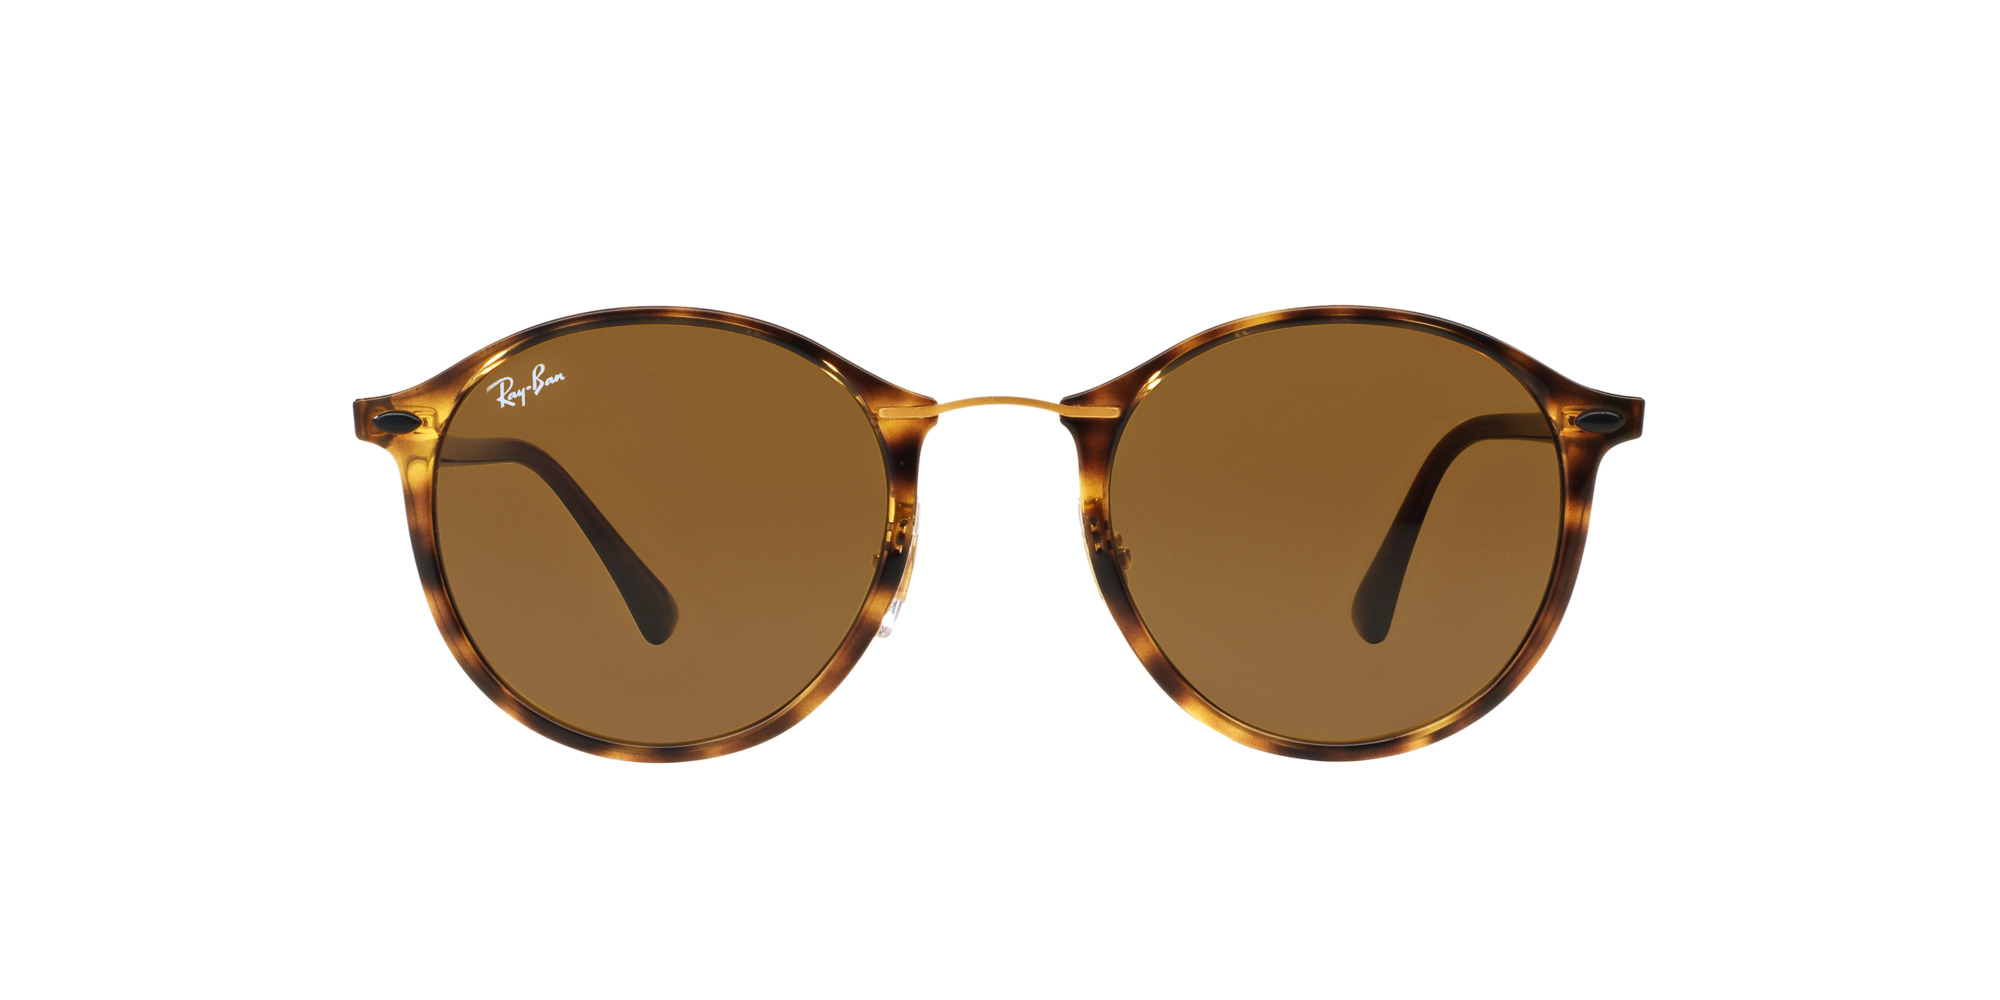 RAY-BAN ROUND II LIGHT RB 4242 710/73-360